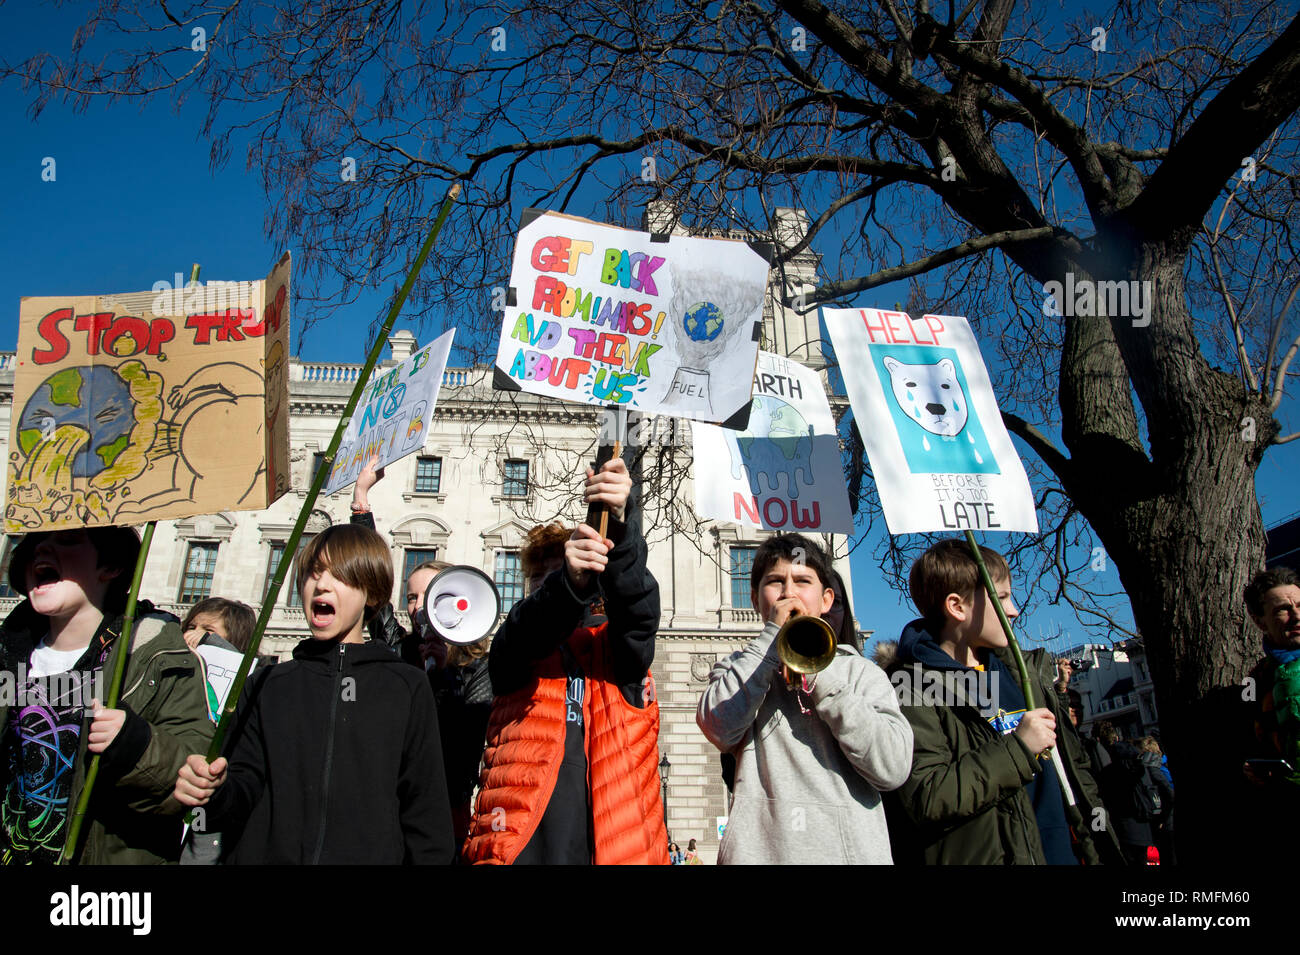 London, UK. 15th Feb, 2019. Thousands of schoolchildren and young people in the UK have taken part in climate strikes, walking out of school to protest at government inaction on climate change as part of a global campaign for action on climate change.The school strikes have been inspired by young Swedish activist Greta Thurnberg who since August 2018 has been protesting on Fridays. In London several thousands children and students gathered in Parliament Square, Westminster. Credit: Jenny Matthews/Alamy Live News Stock Photo